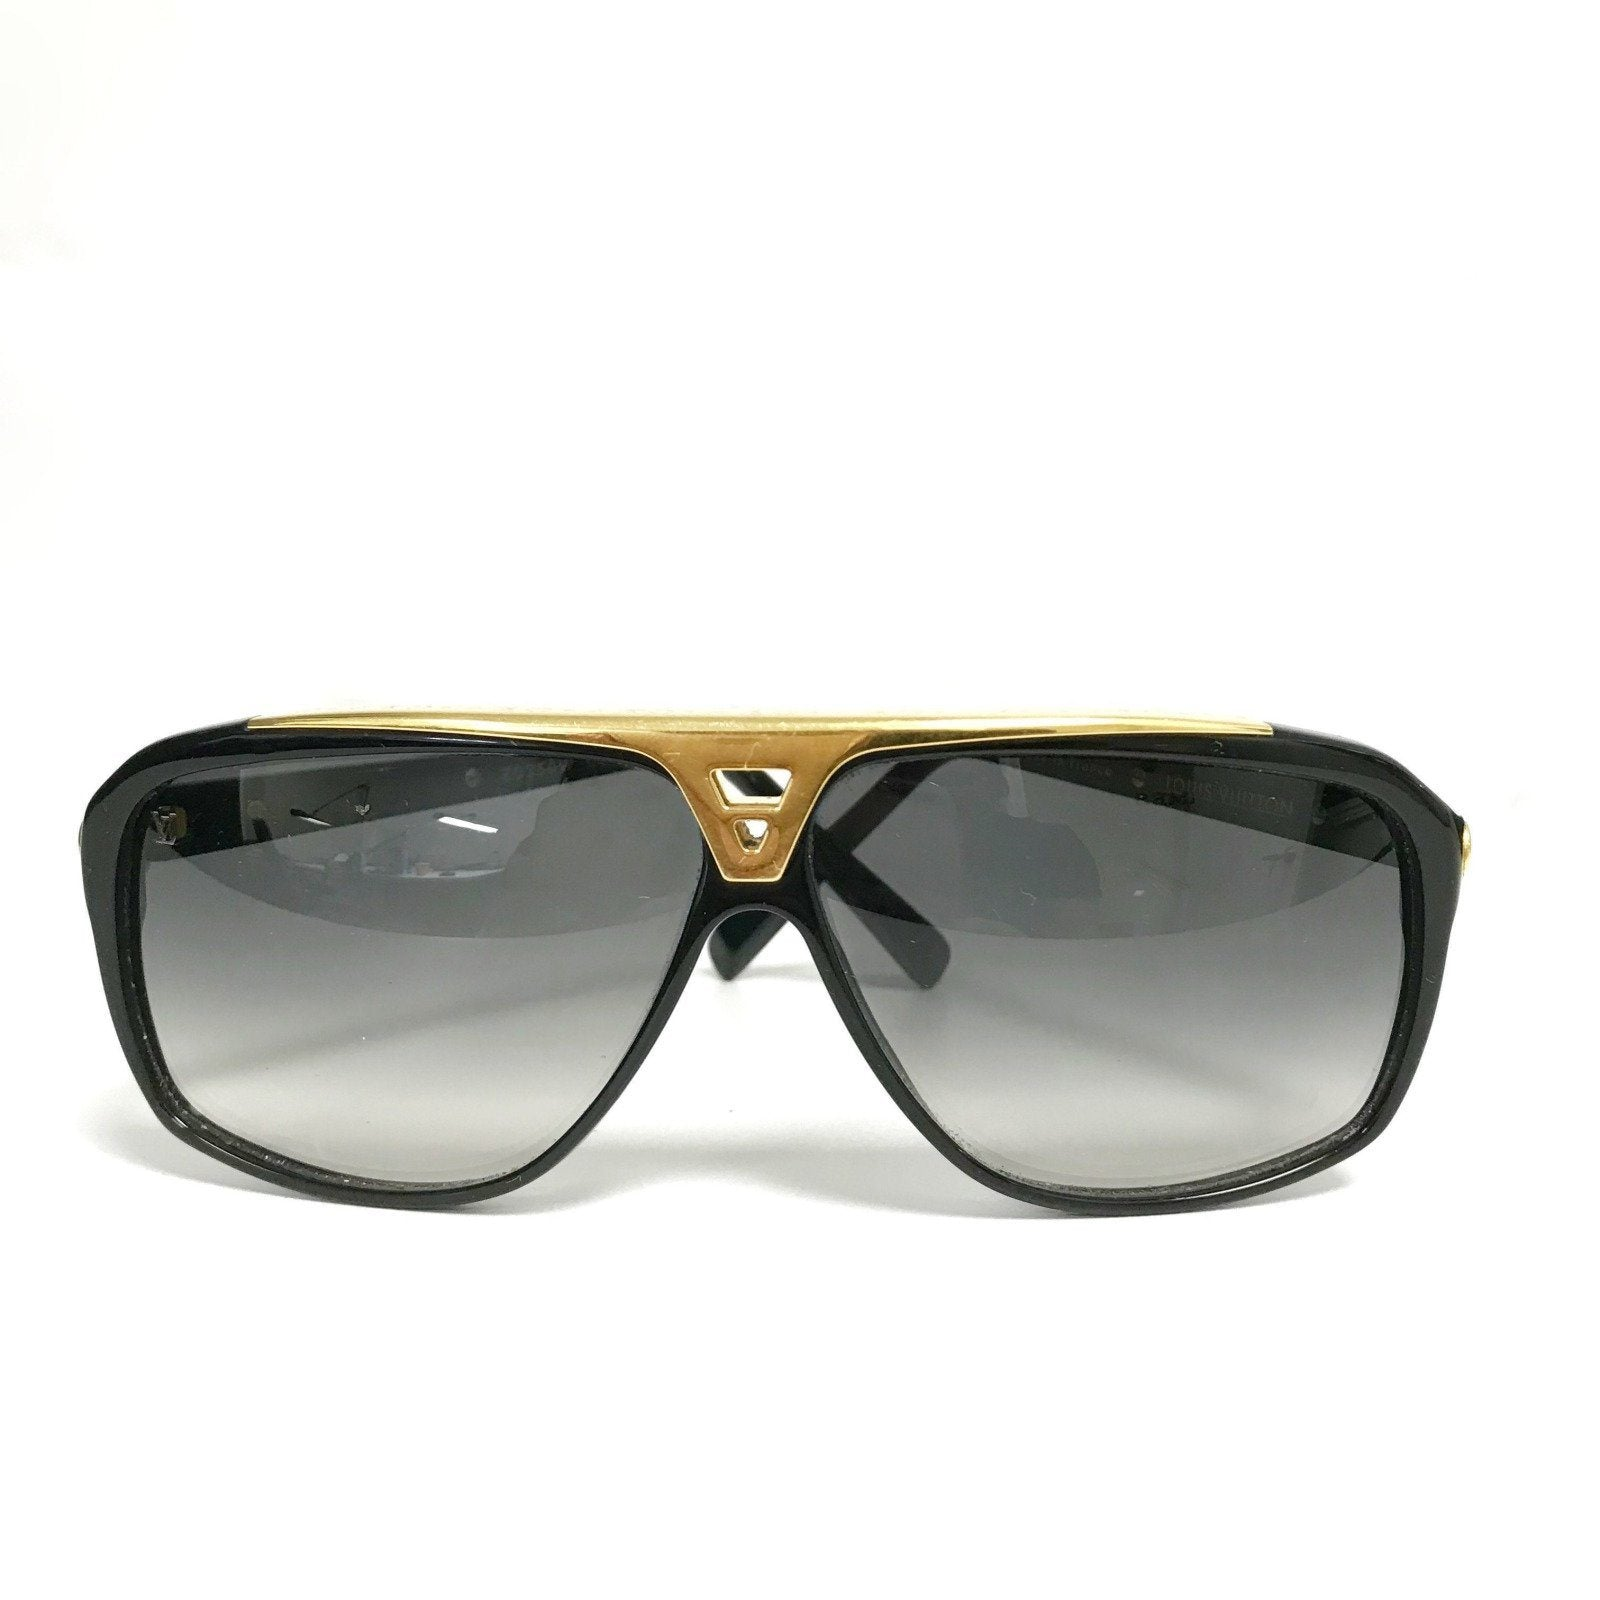 15ec496626 Louis Vuitton Evidence Men s Sunglasses - Oliver Jewellery